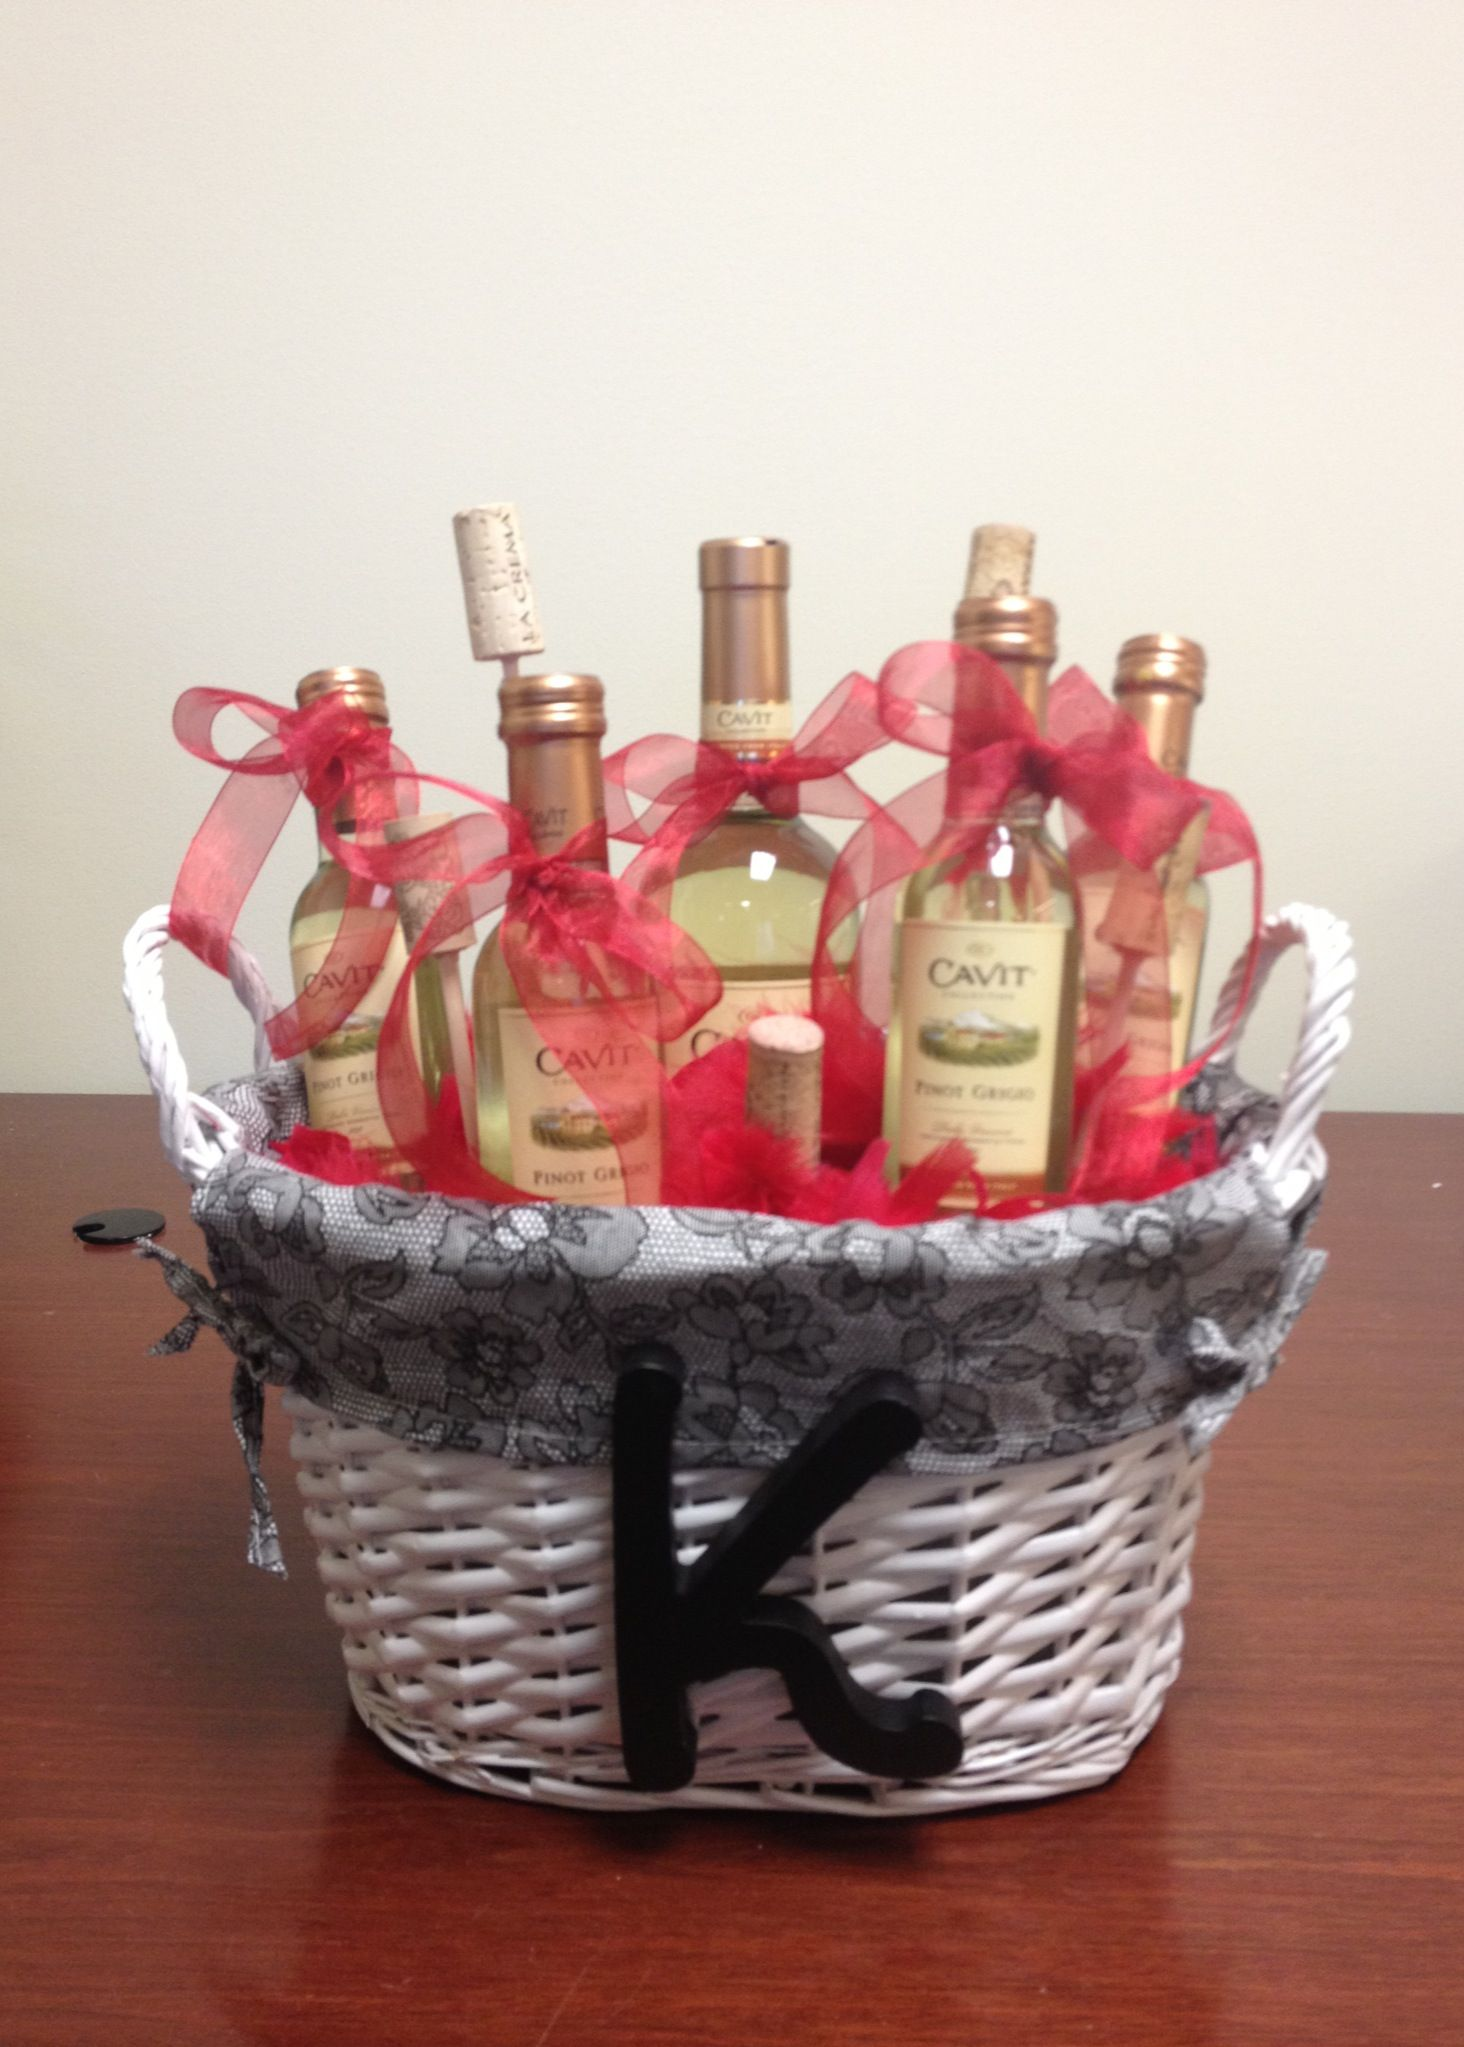 Pin By Samantha Hopkins On Diy Projects Wine Gifts Diy Diy Wine Gift Baskets Wine Gift Baskets